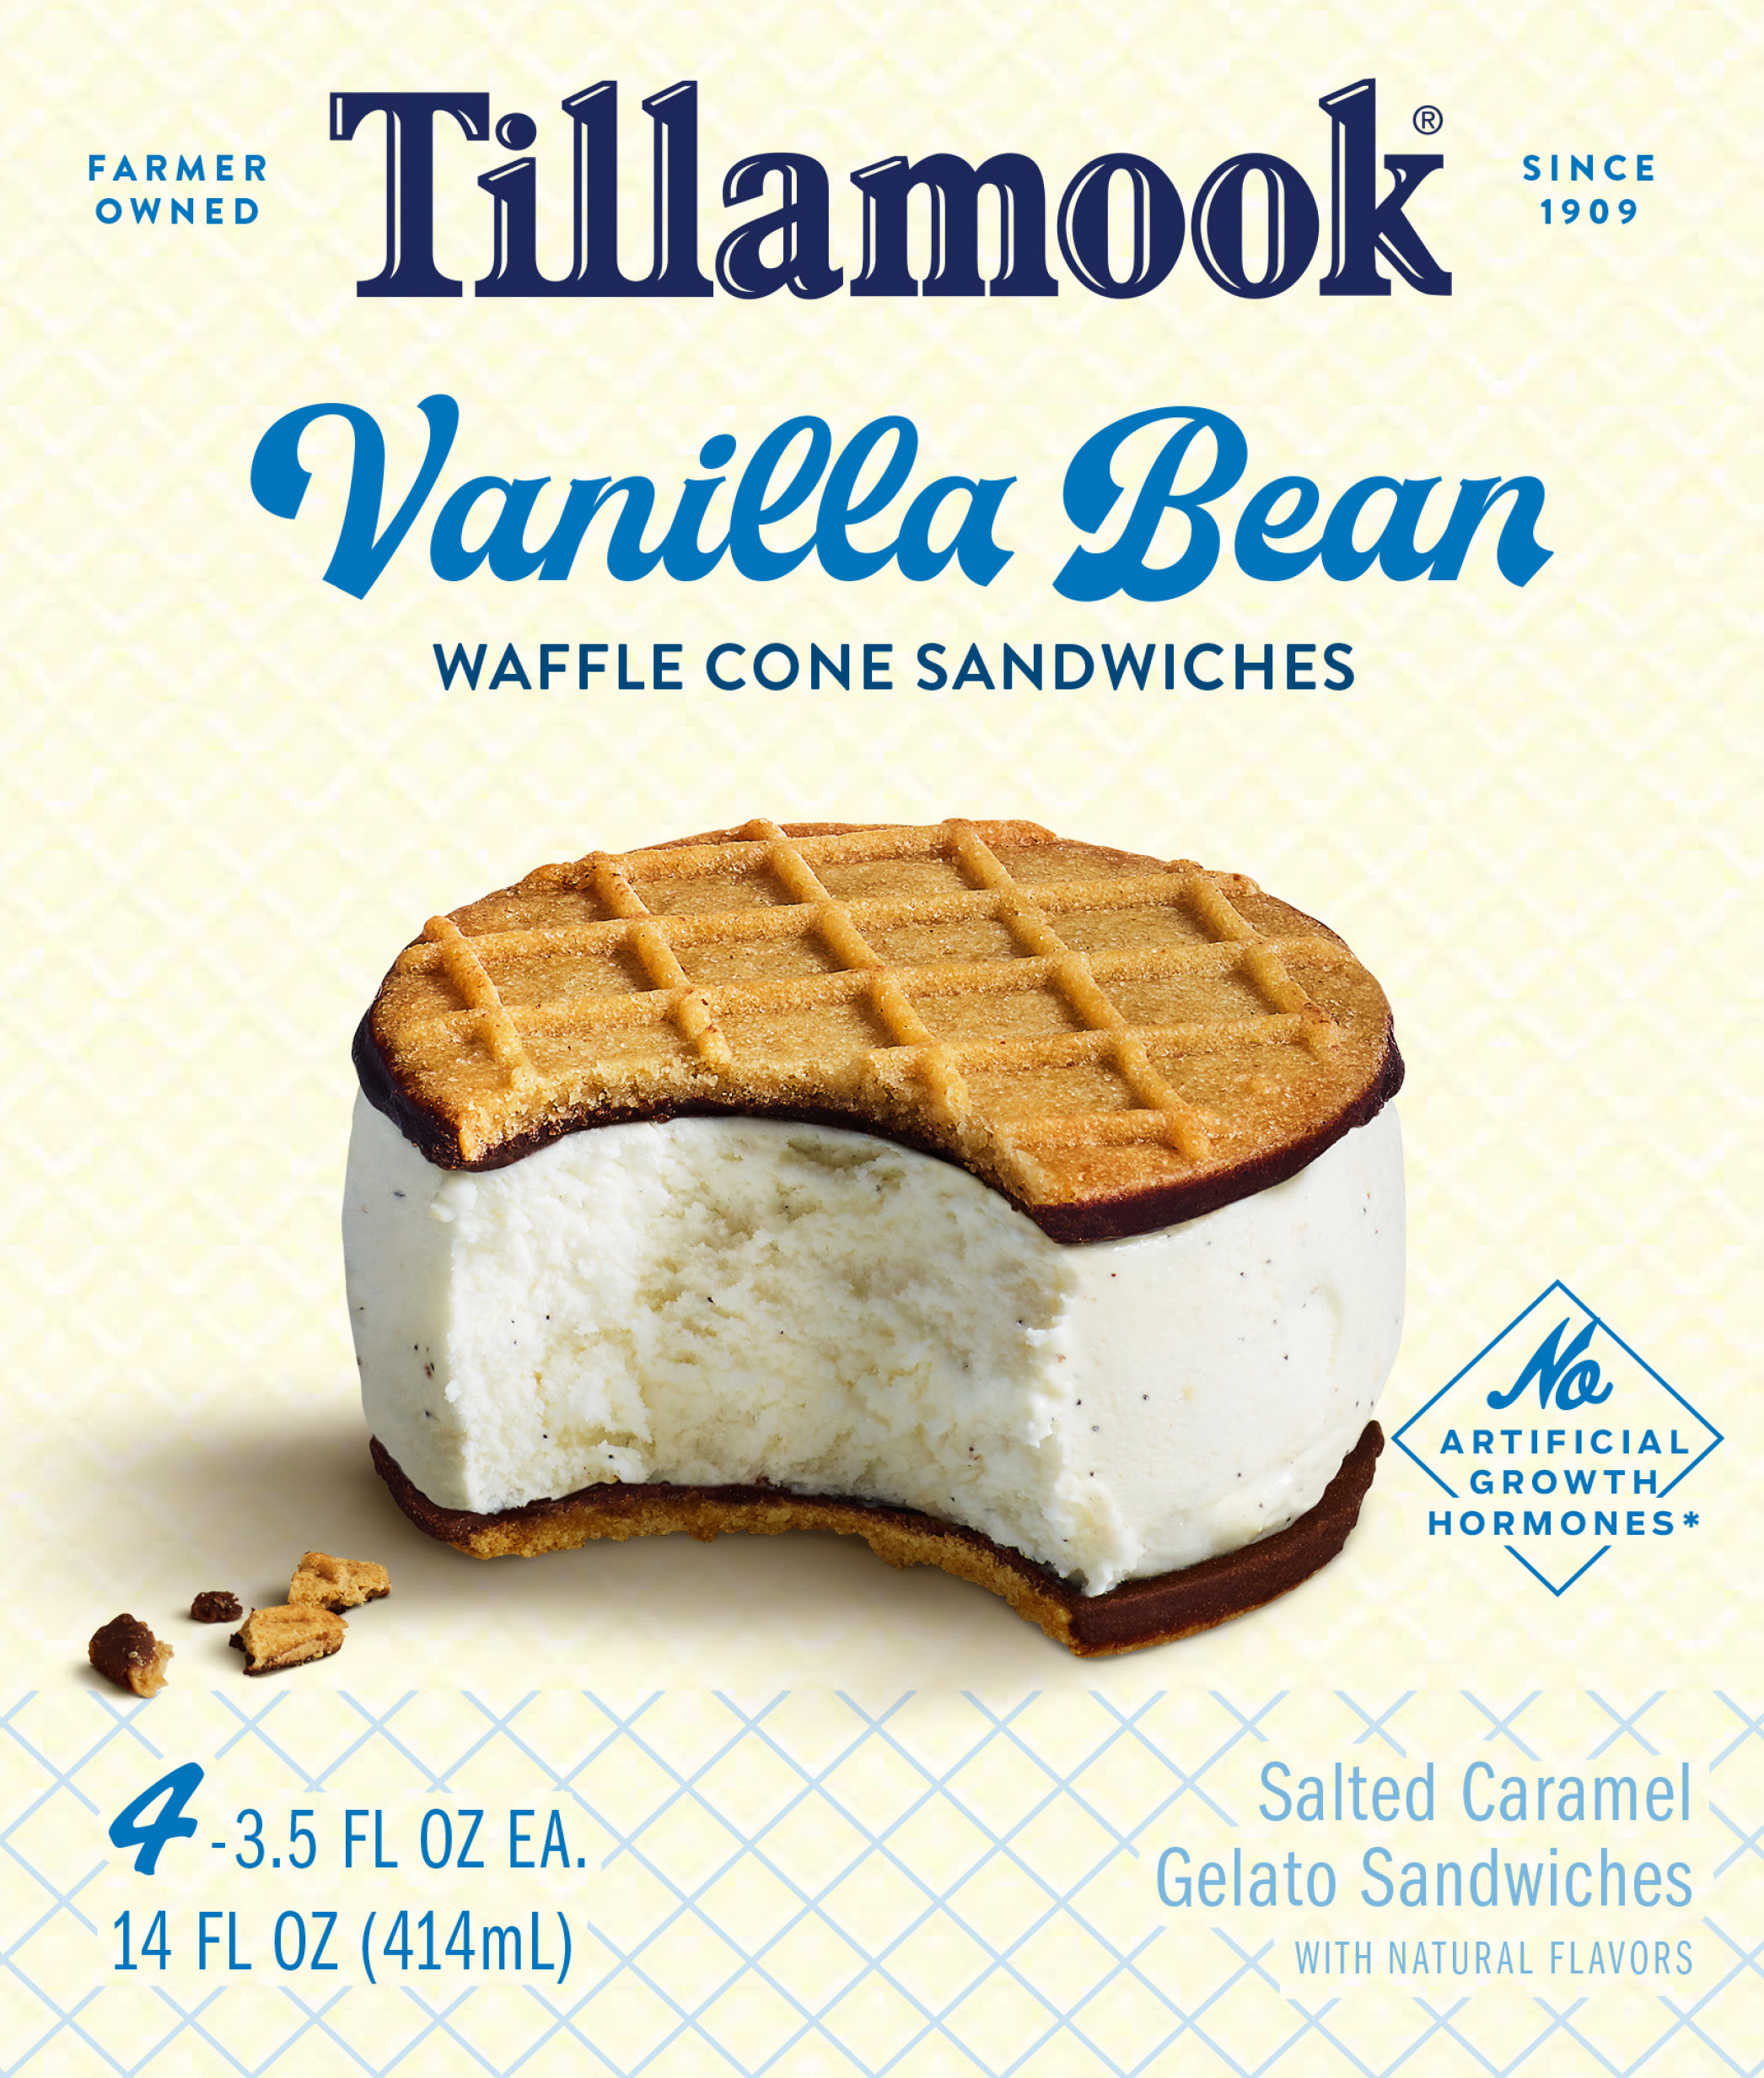 Tillamook_PackagingImages_(6)WaffleSandwiches_retouch from sean_v3 copy-2.jpg